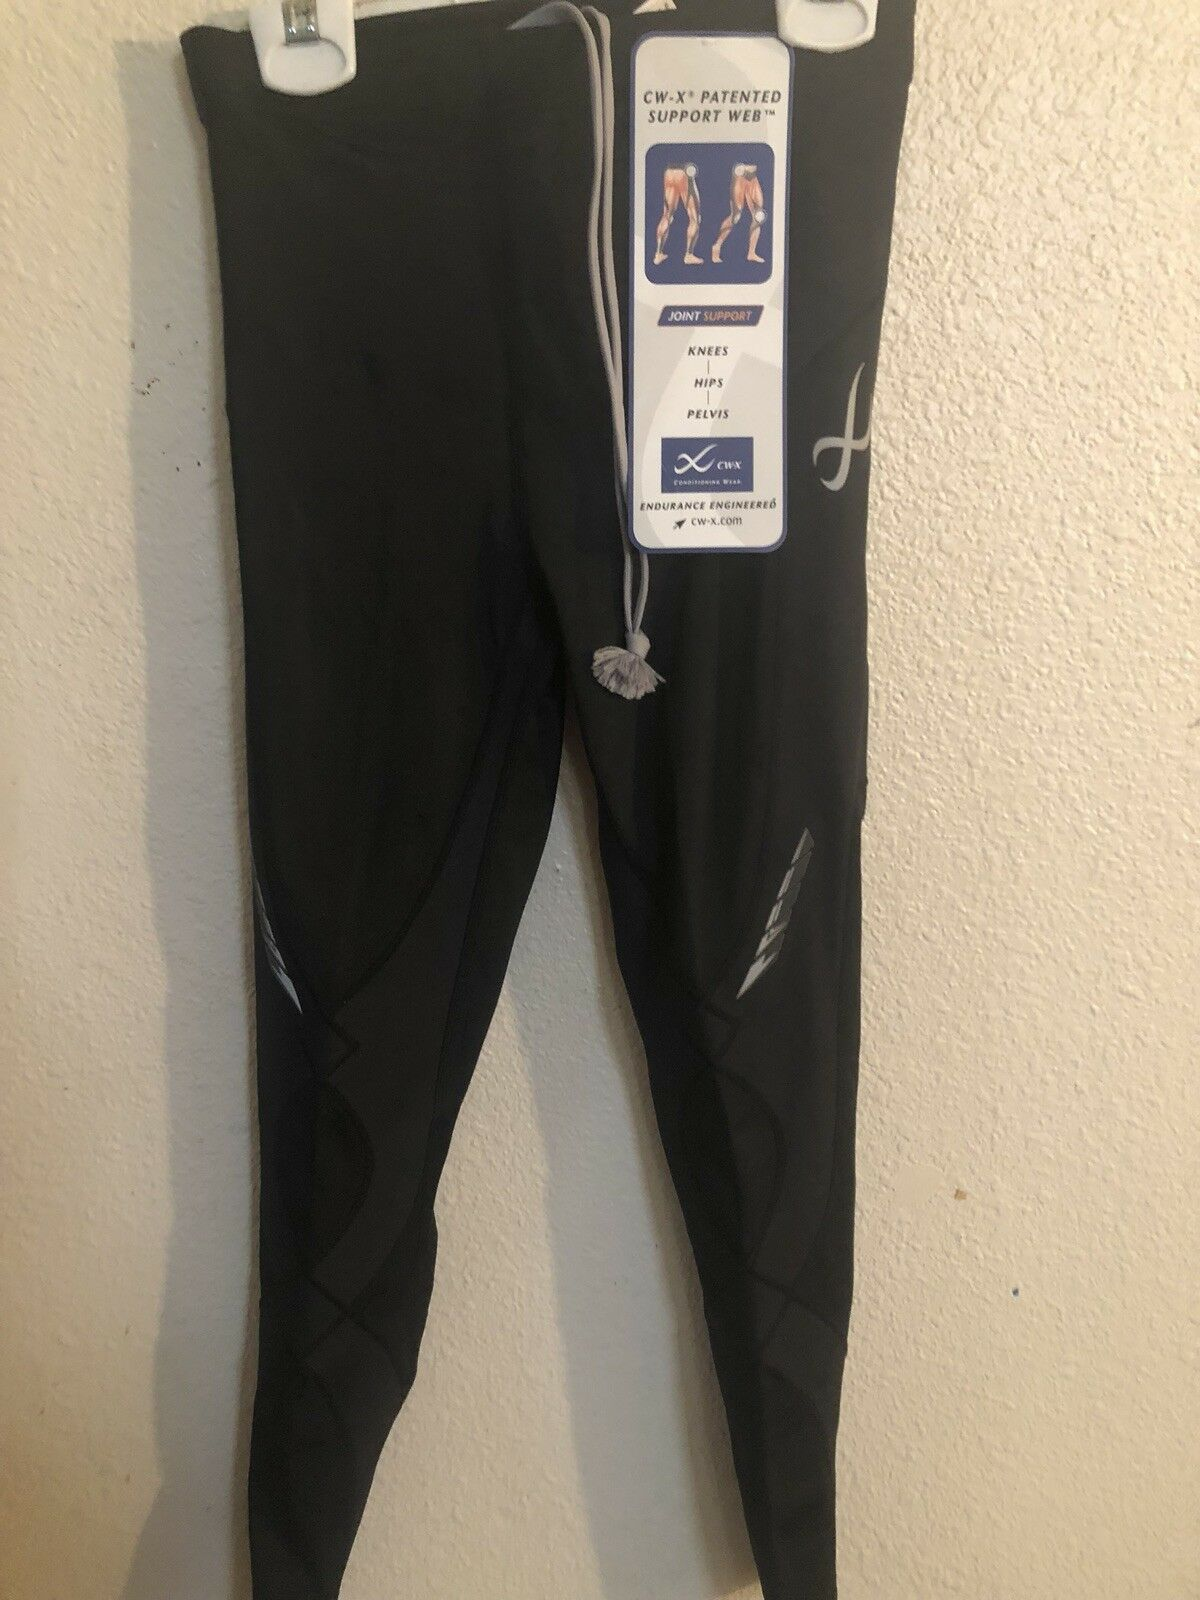 CWX Wacoal donna Conditioning Wear Long Tights Stabilyx Model HZY149 New FS